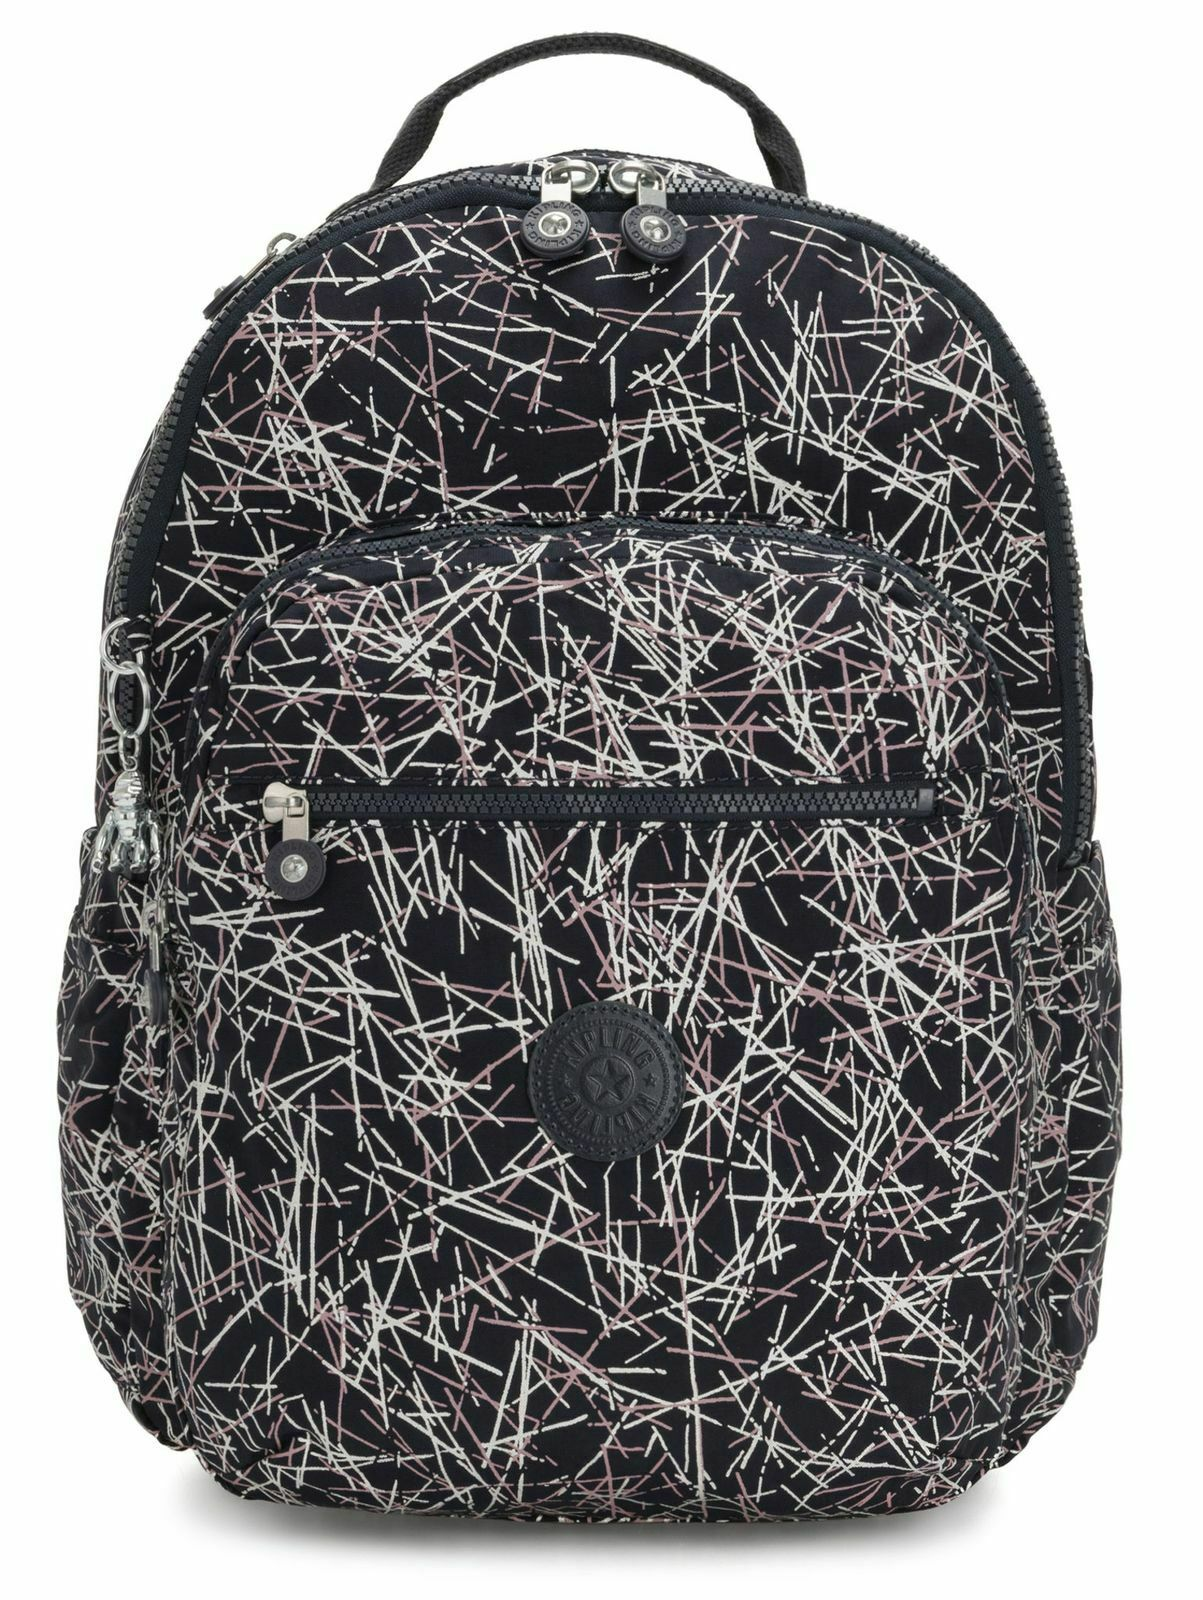 Kipling Seoul Backpack Navy Stick Print